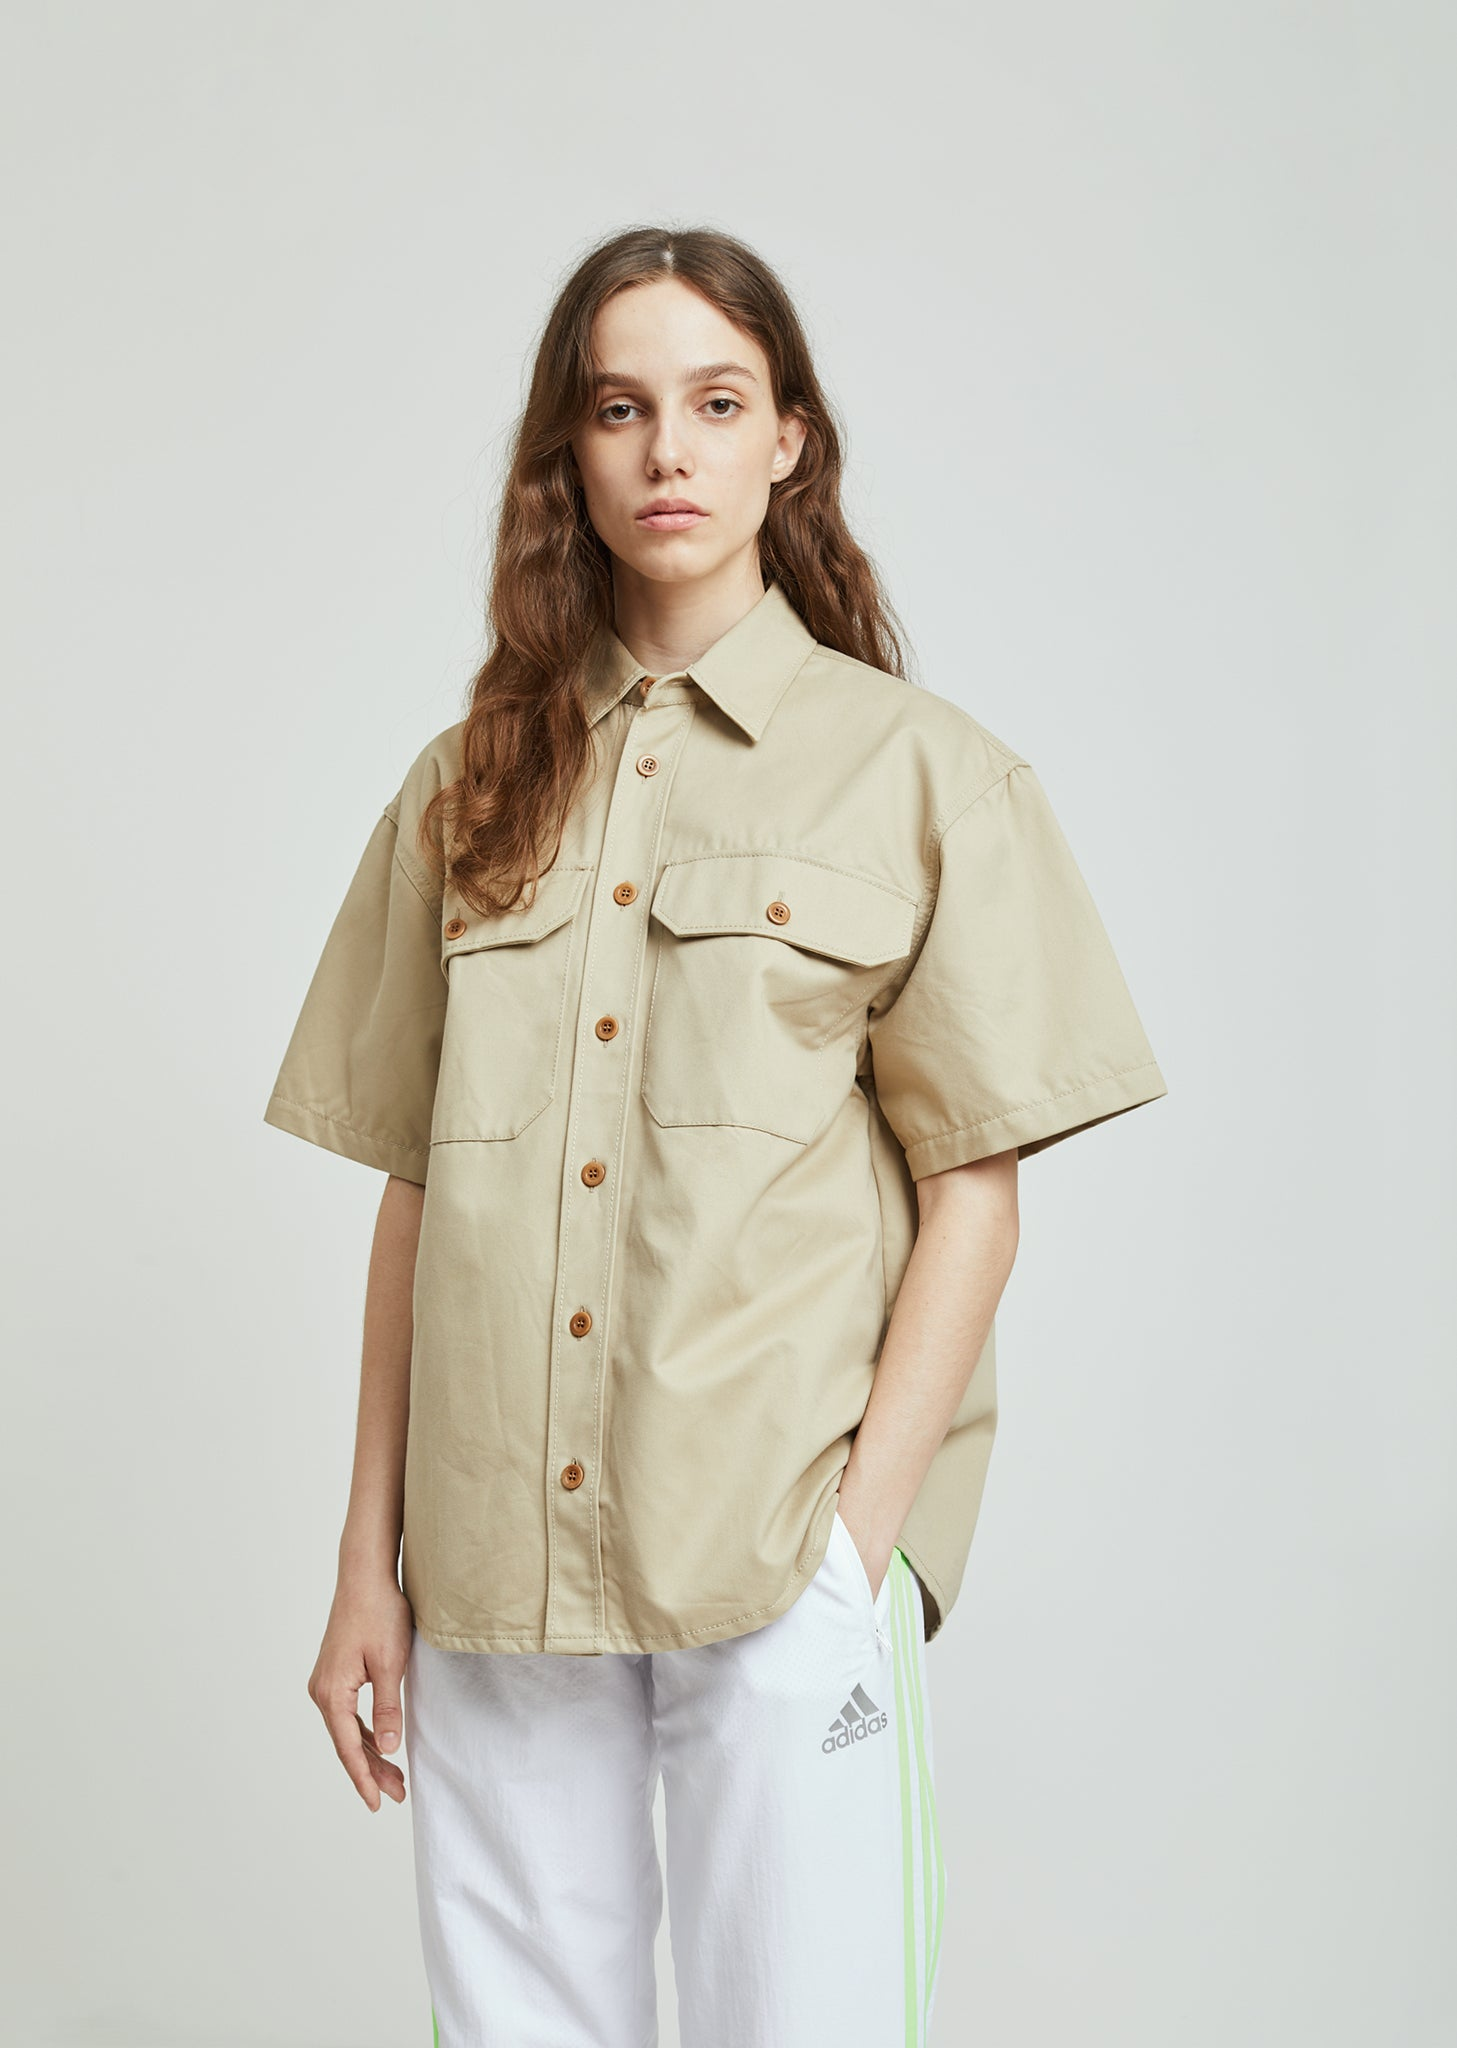 633e981d933f7 Washed Cotton Short Sleeve Shirt by Gosha Rubchinskiy– La Garçonne